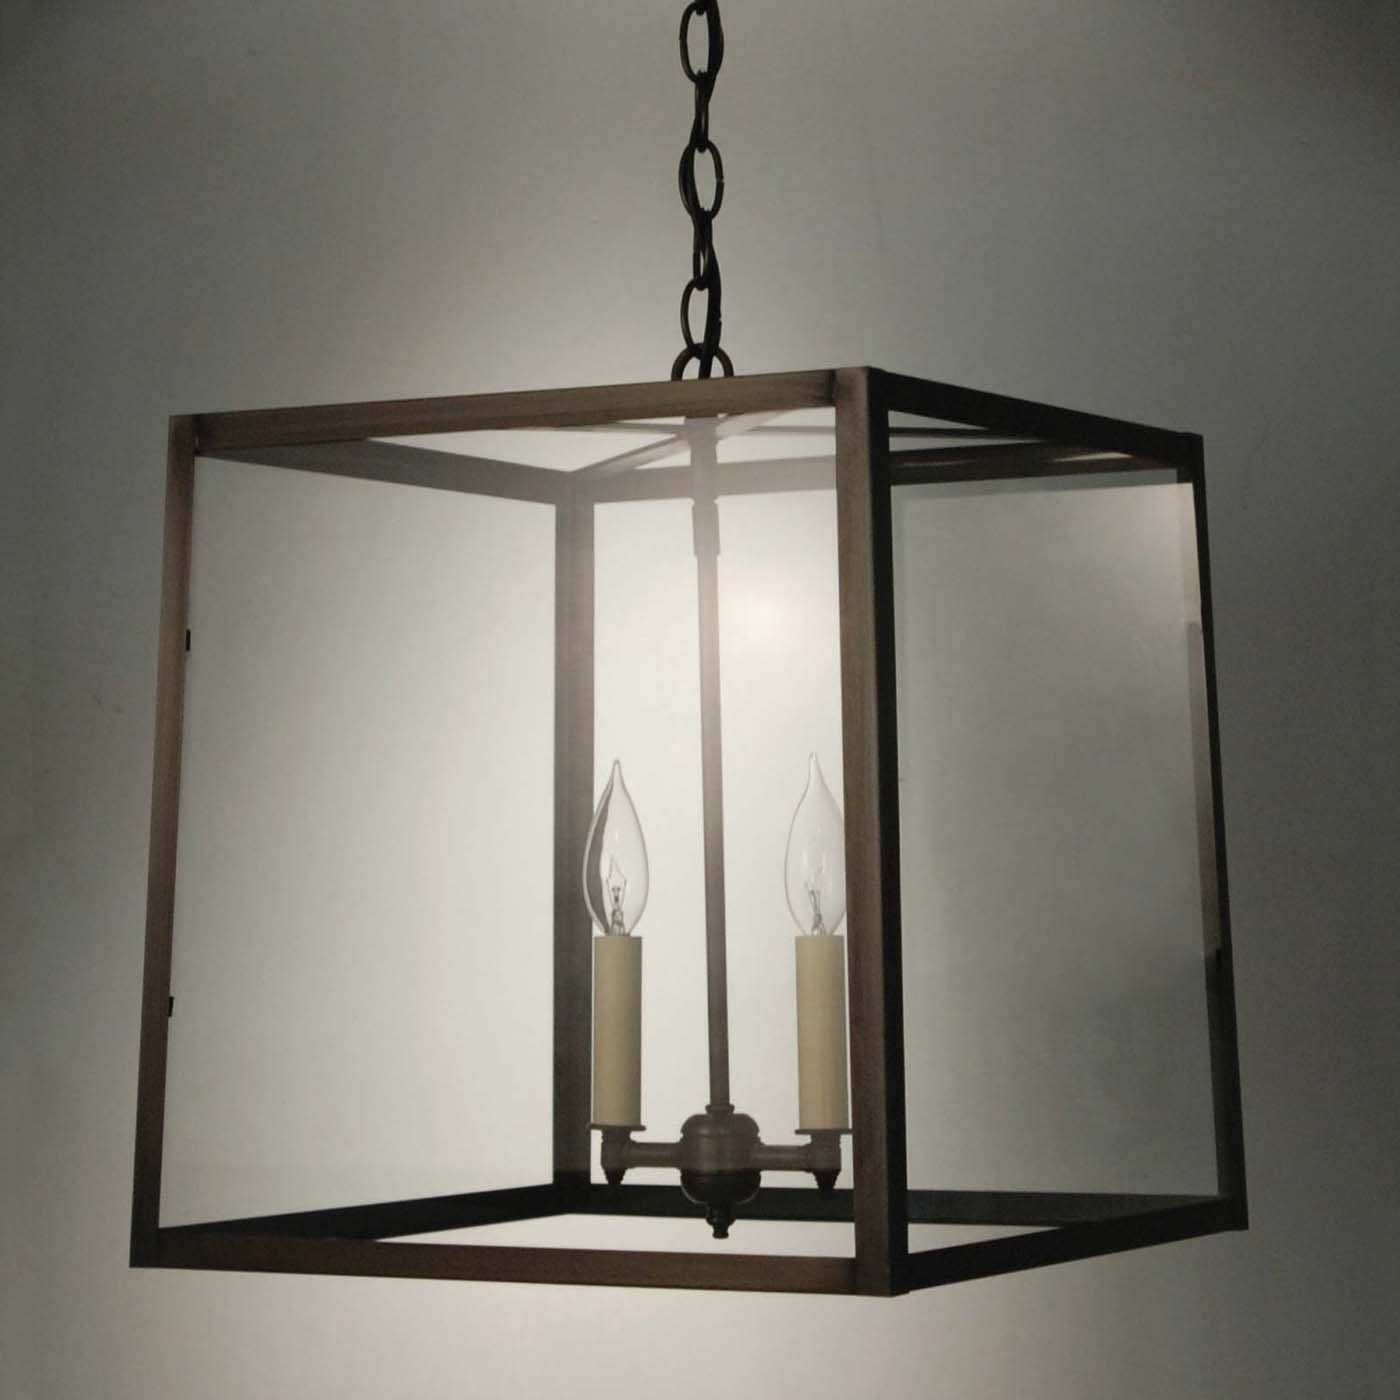 15 inches wide northeast lantern st1415 transitional square northeast lantern square trapezoid two light wide pendant light arubaitofo Image collections